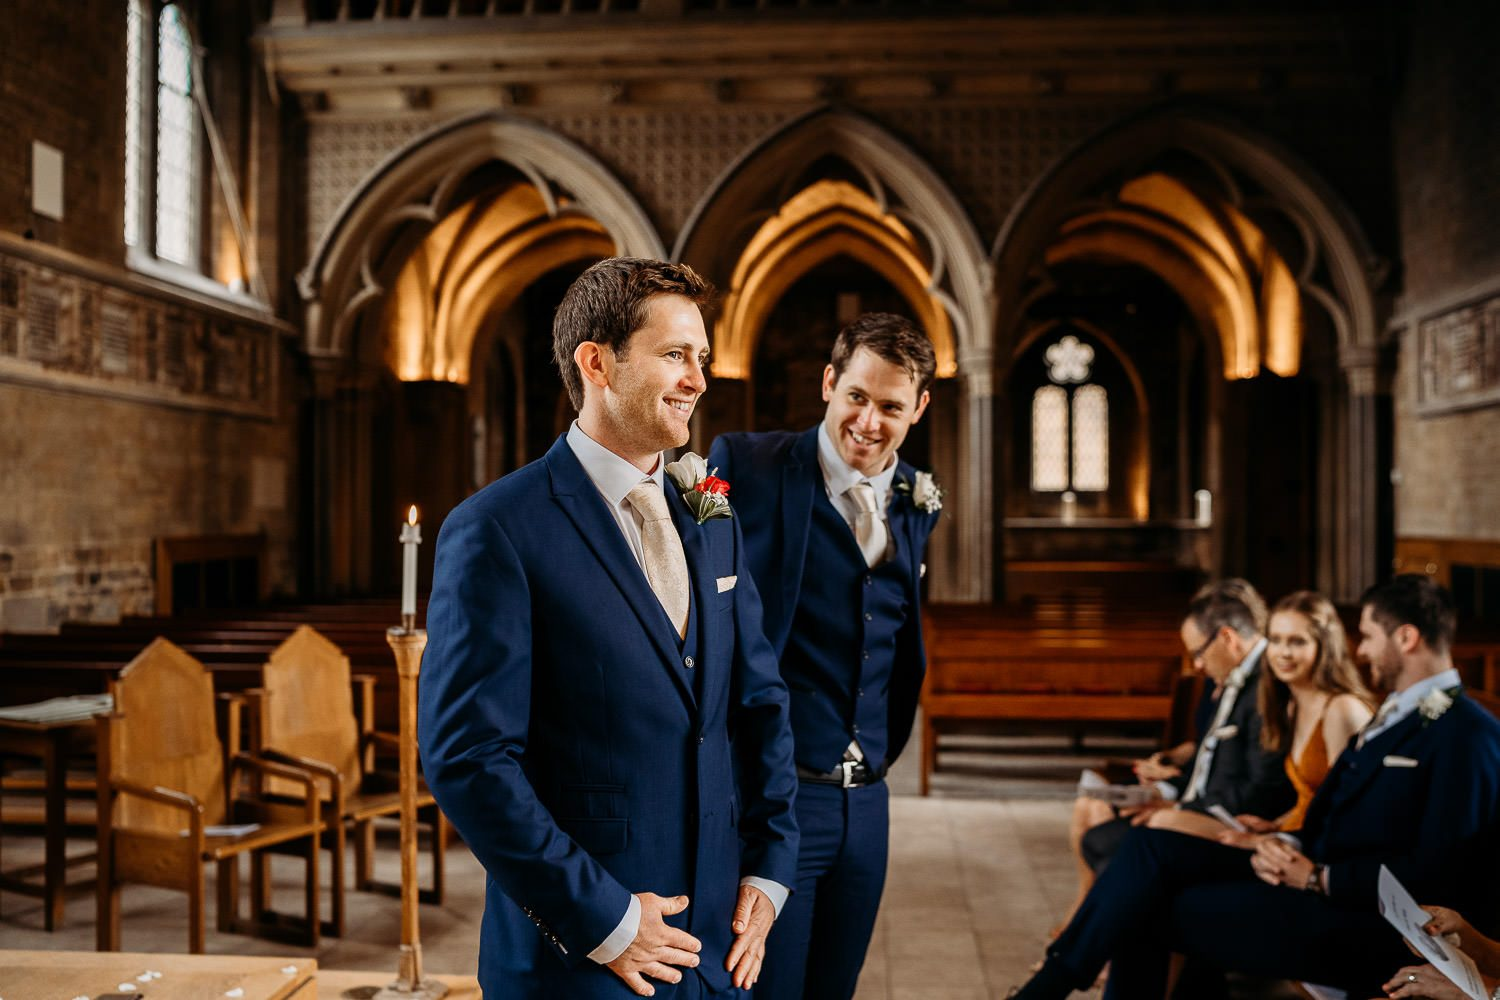 groom and brother smiling while waiting for bride at alter